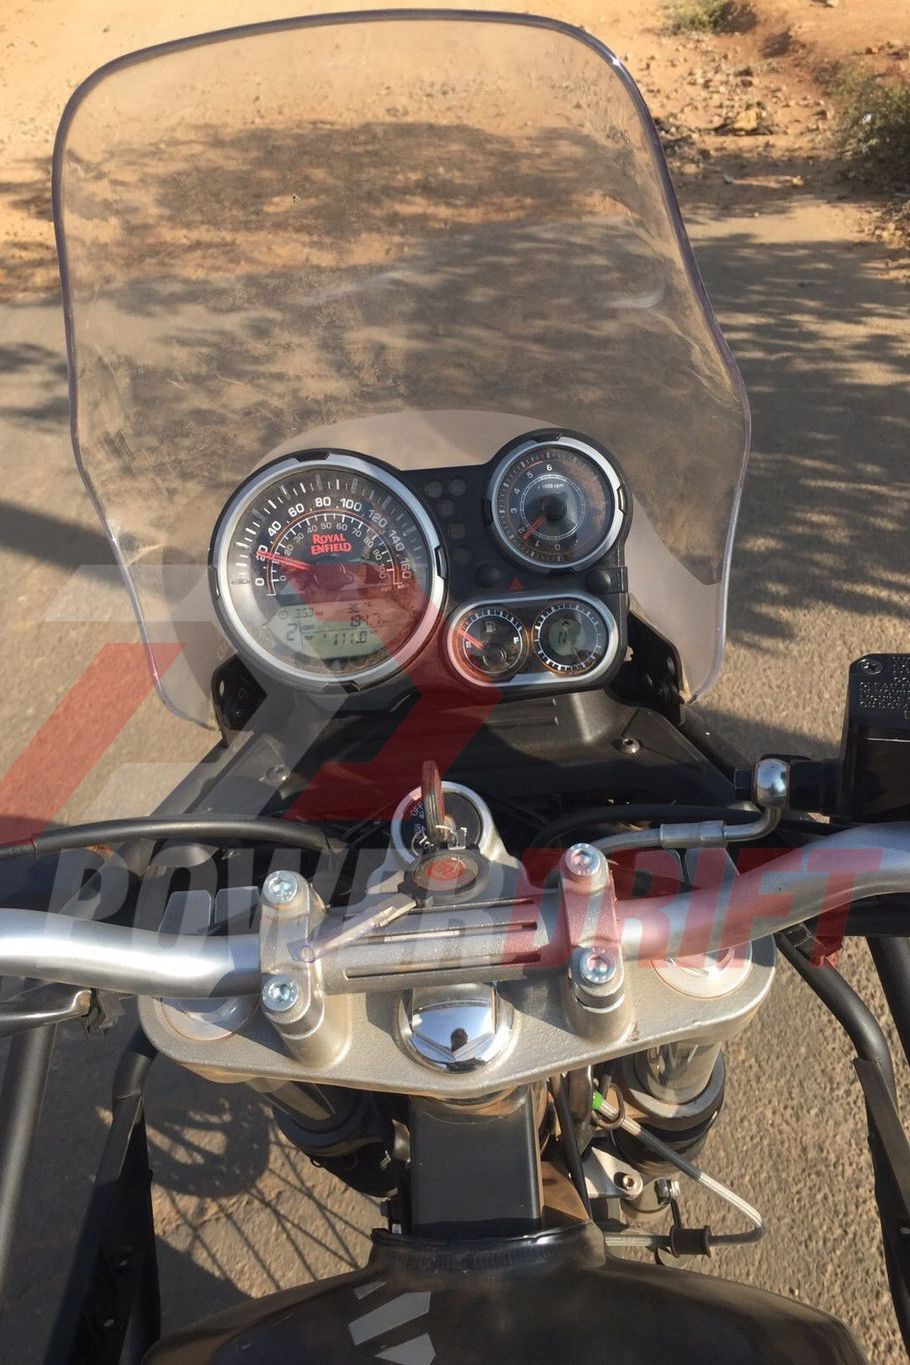 Royal Enfield Himalayan instruments revealed